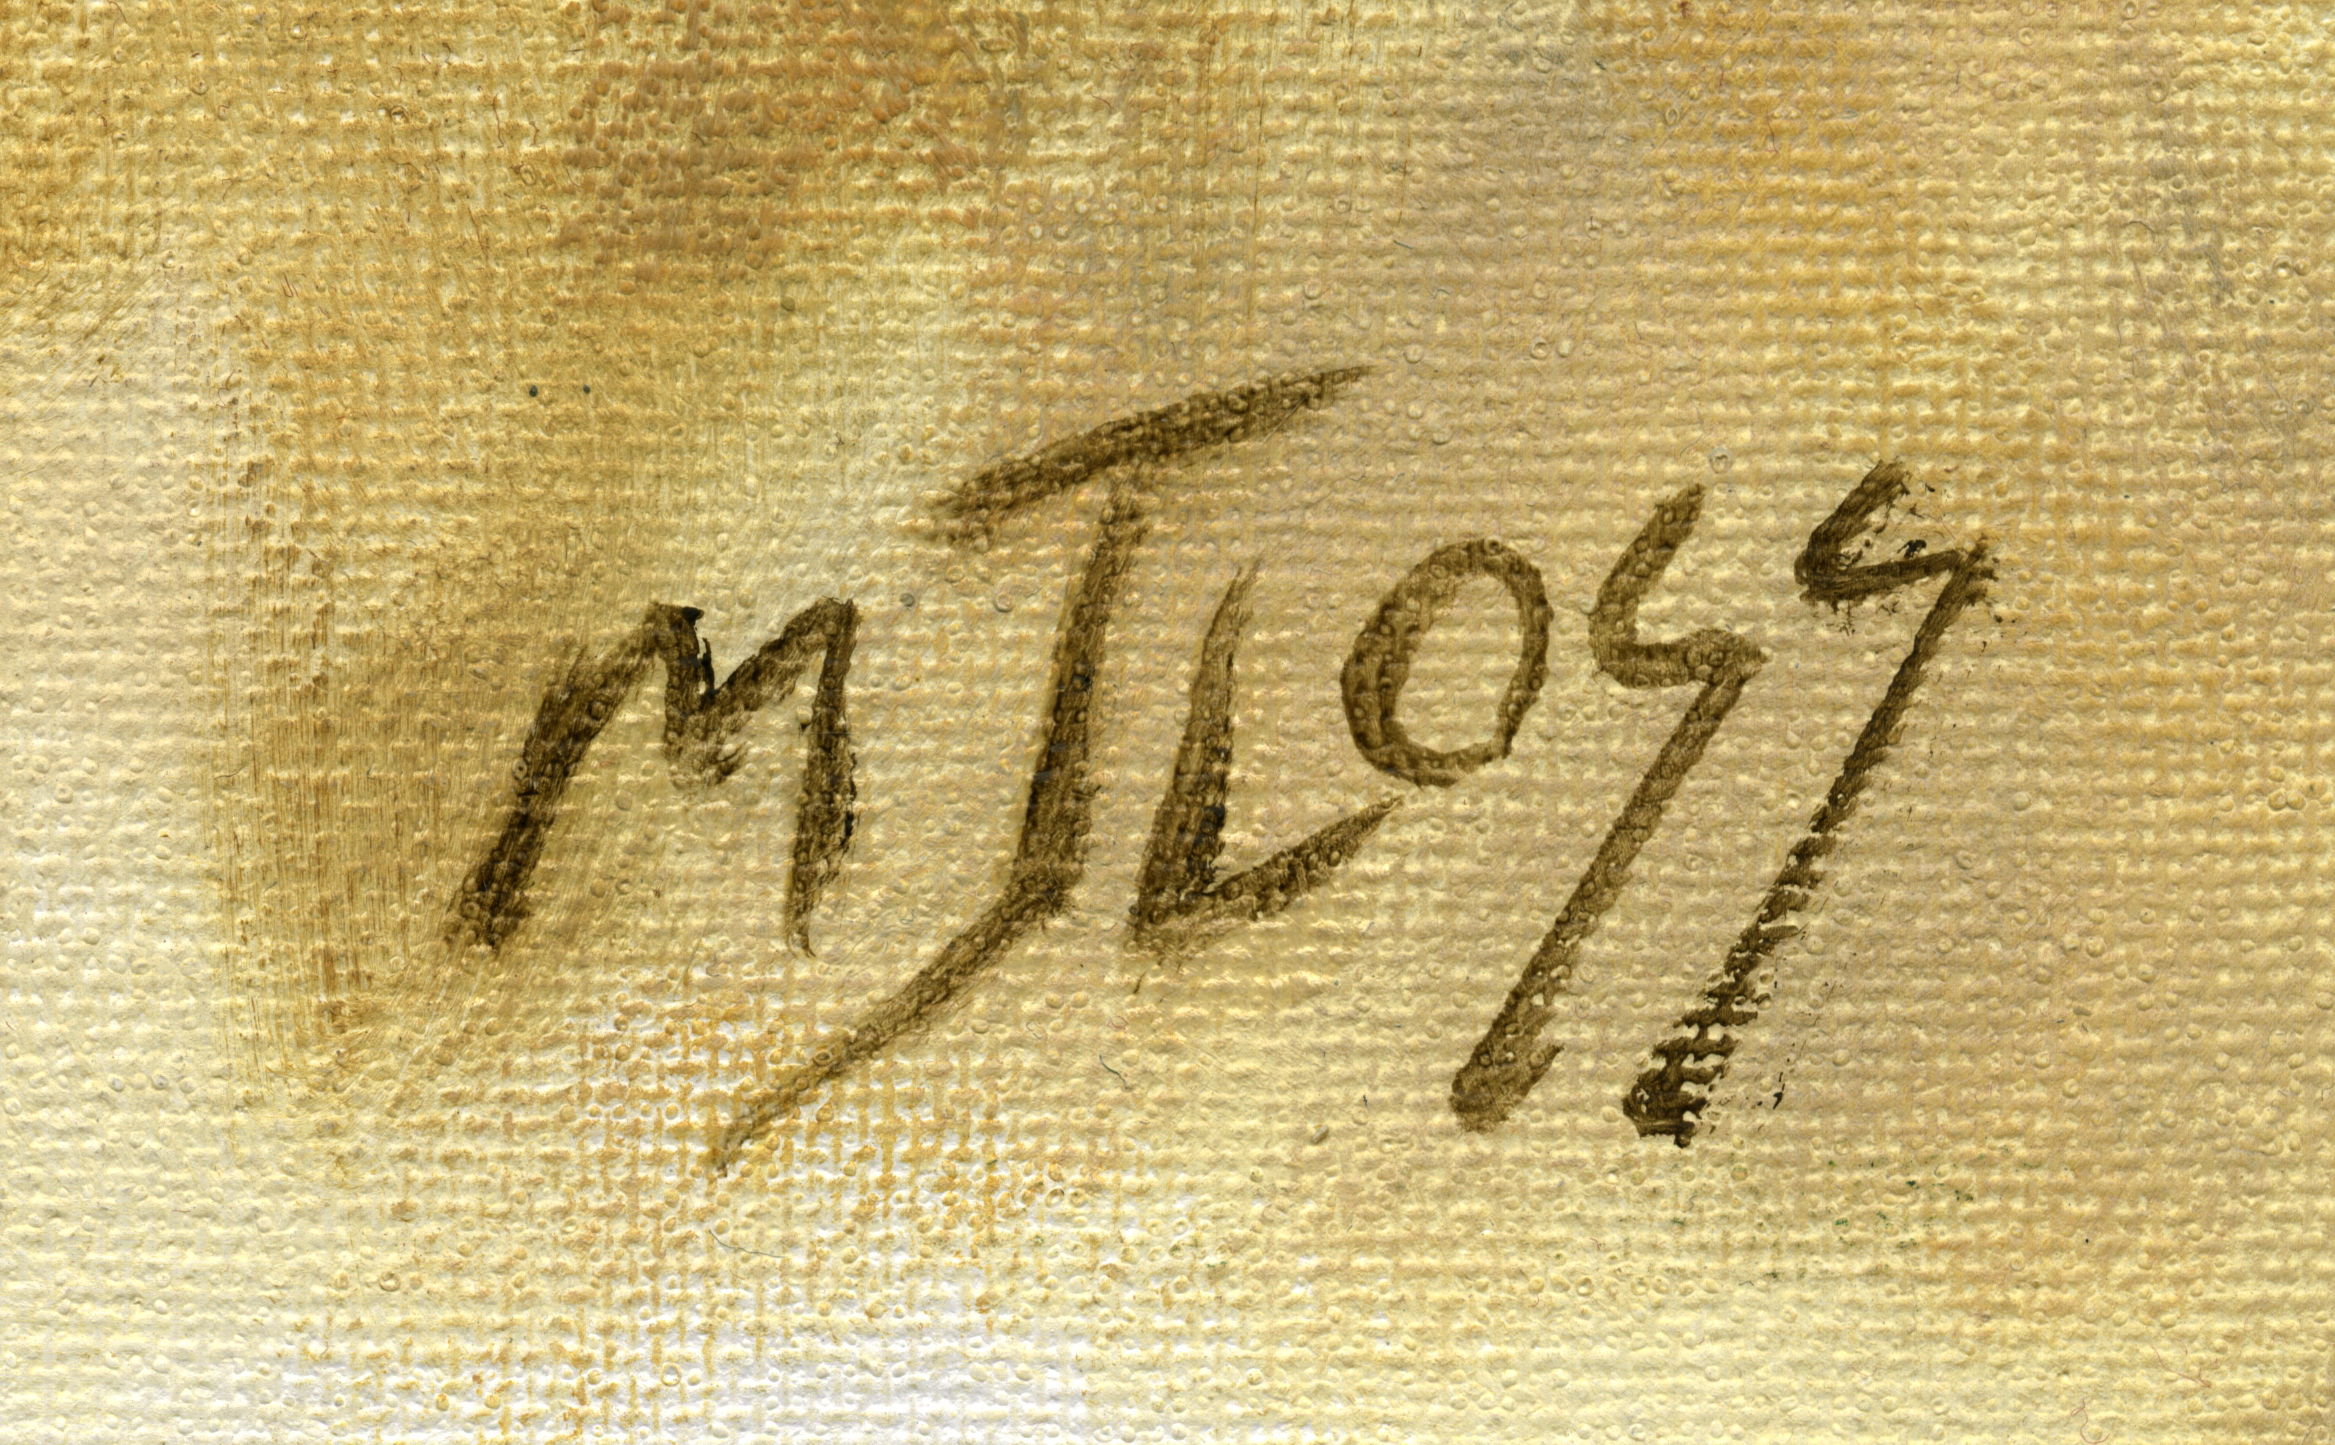 marla J loss's Signature